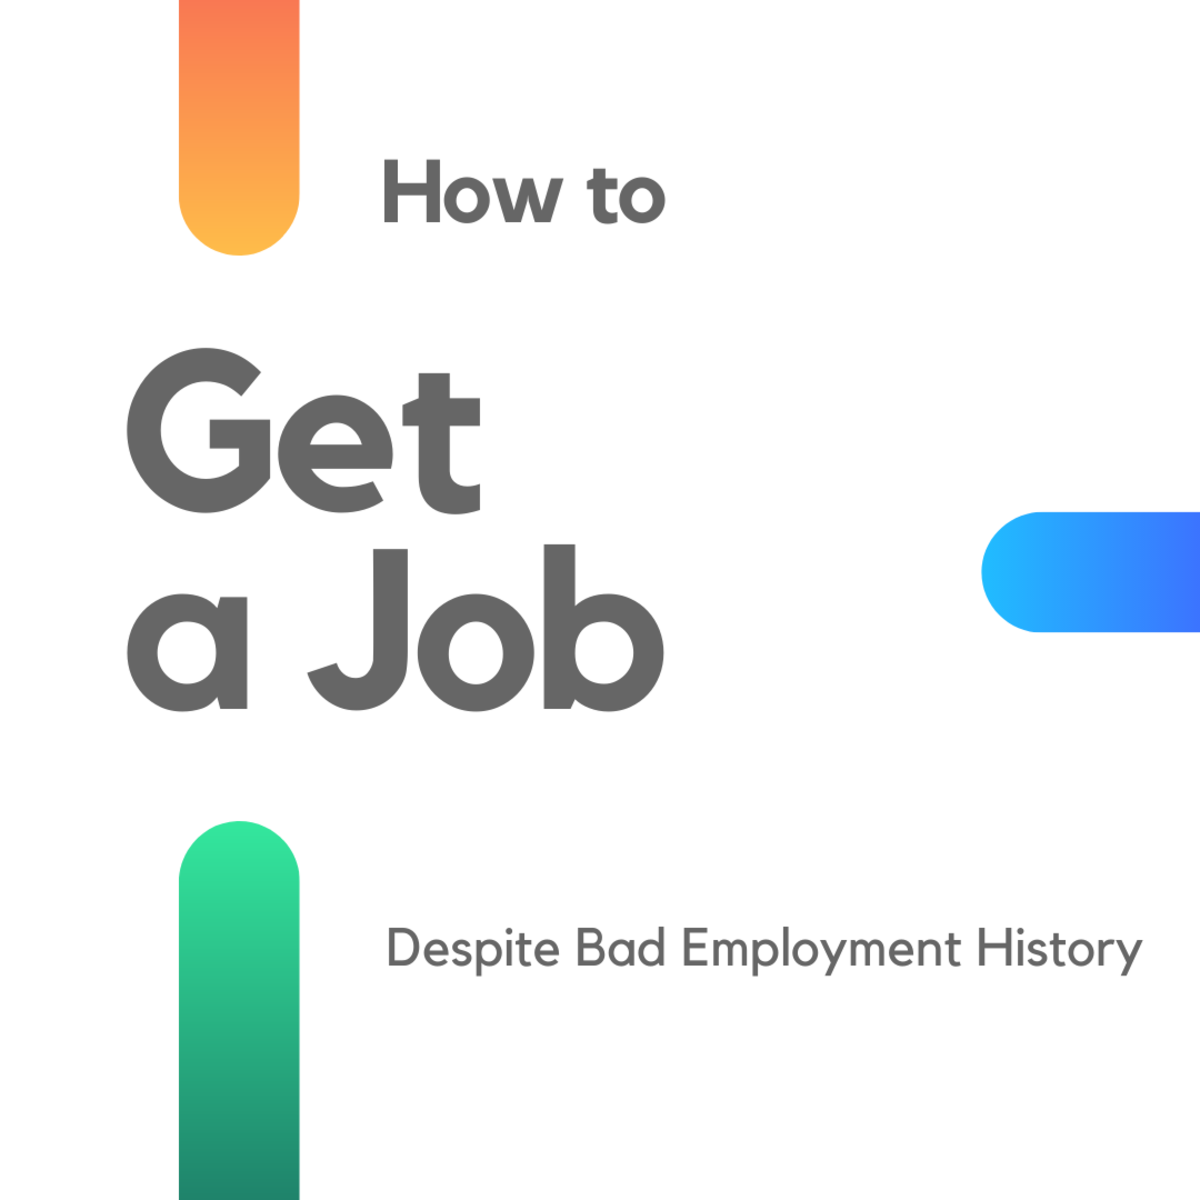 Learn how to get a job despite having a bad past employment history.